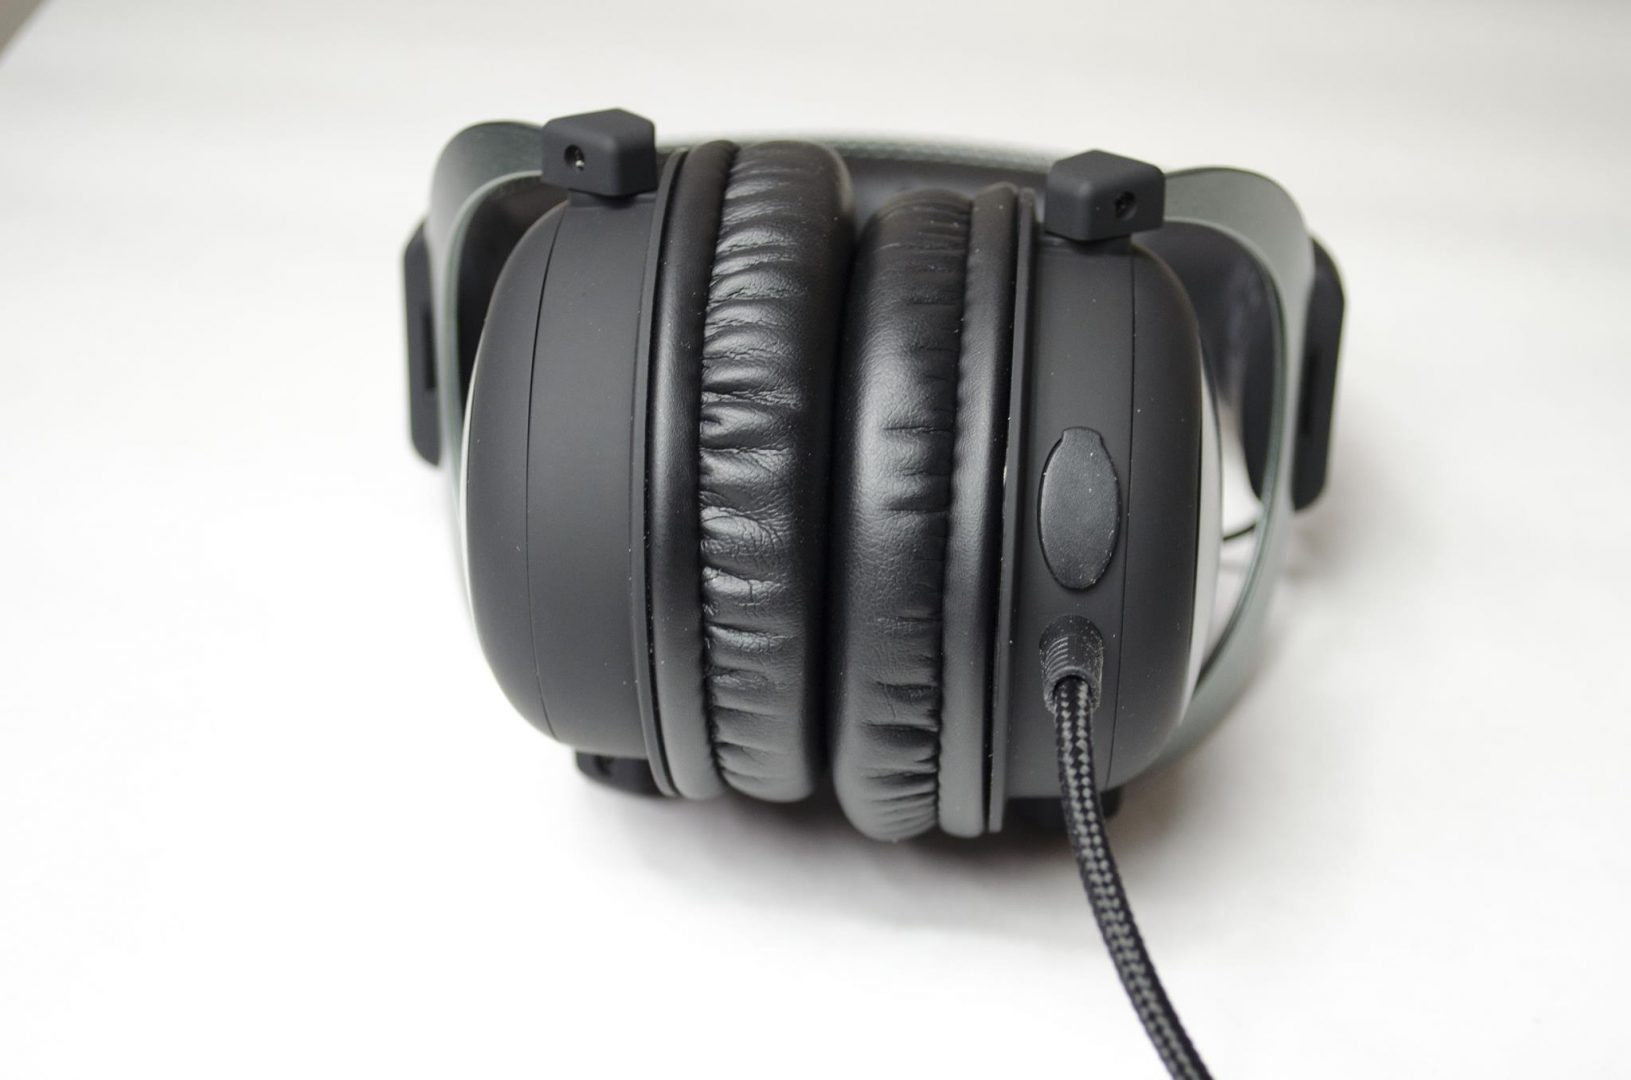 hyperx cloud ii headphones review_9